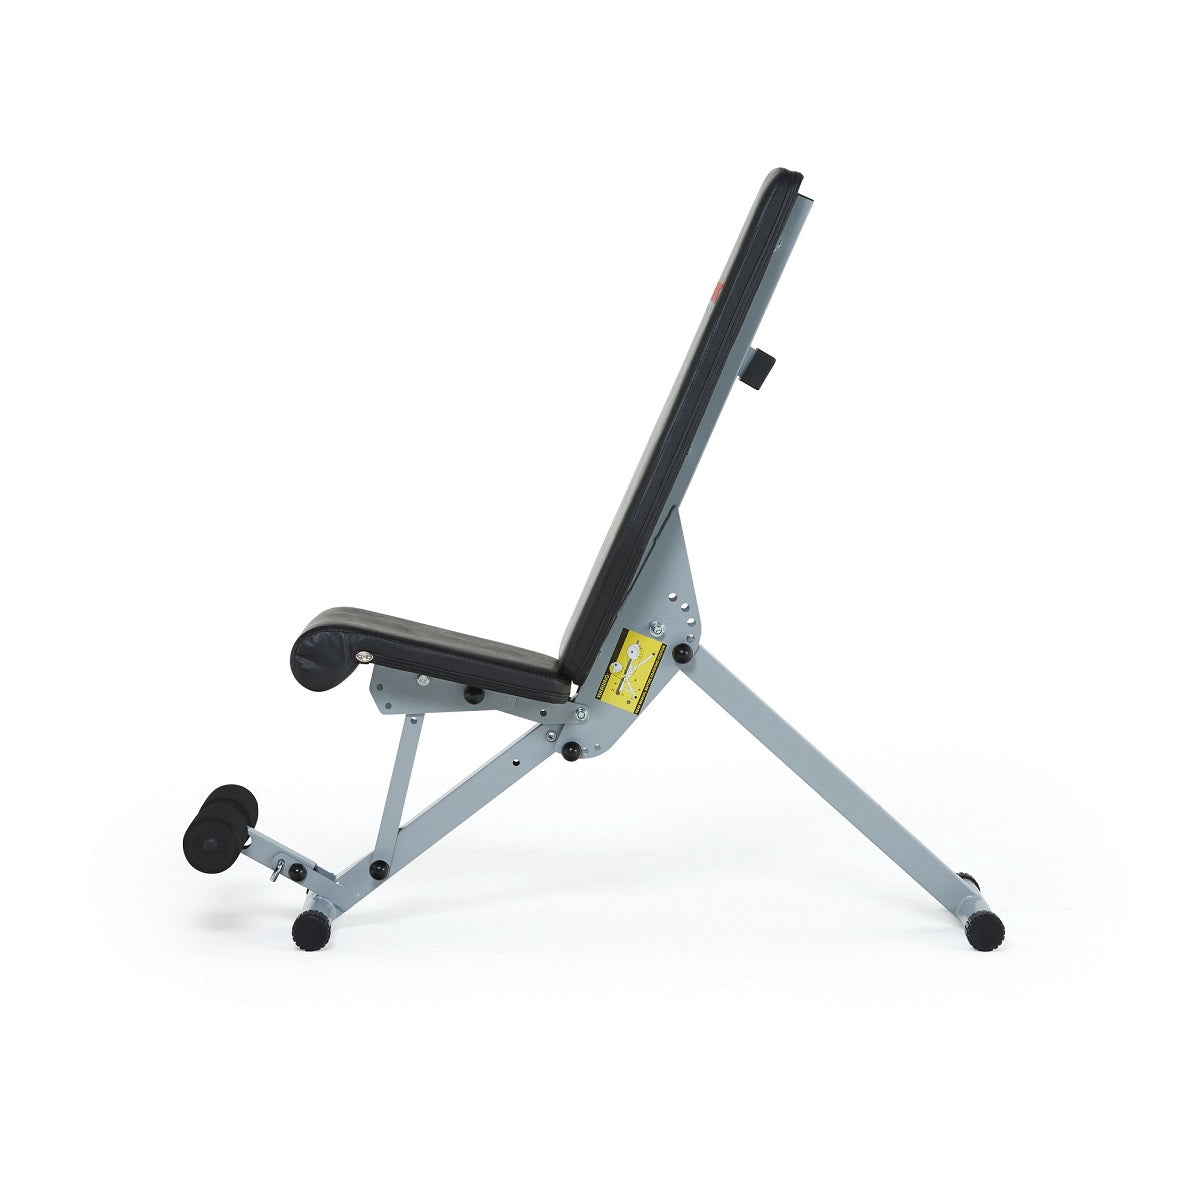 York Fitness 13 in 1 Dumbbell Bench